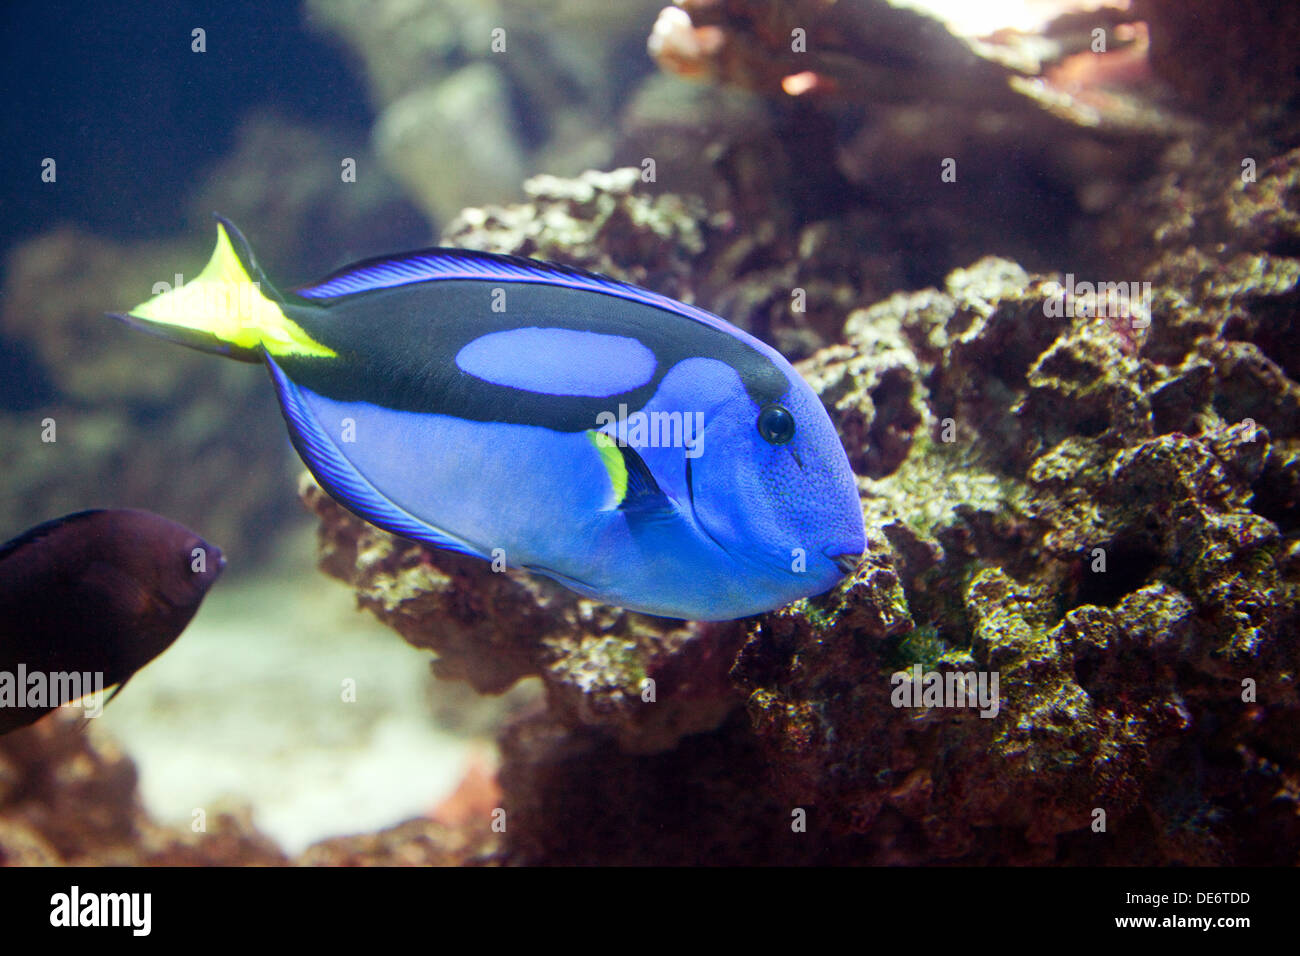 A Regal Tang or Surgeonfish, a tropical fish - Paracanthurus Hepatus, found in the Indo-Pacific - Stock Image